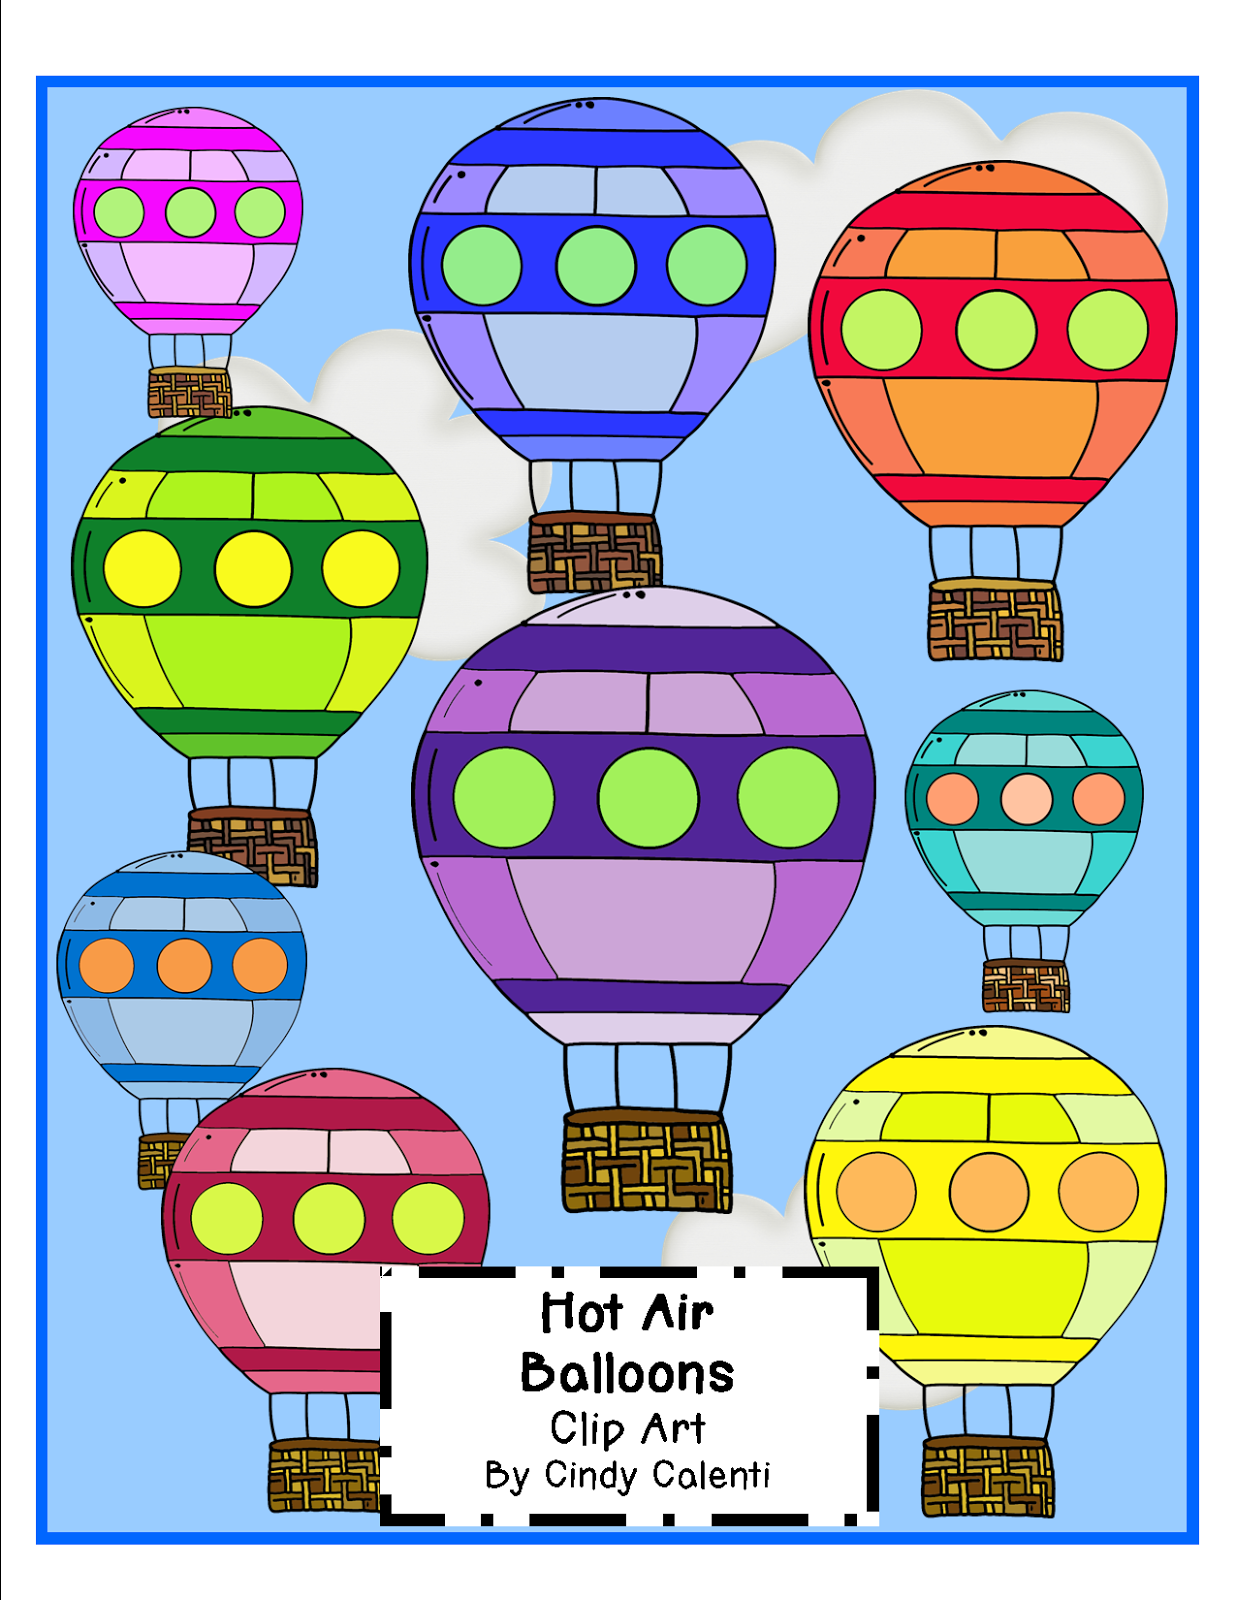 http://www.teacherspayteachers.com/Product/Hot-Air-Balloons-Clip-Art-1399889